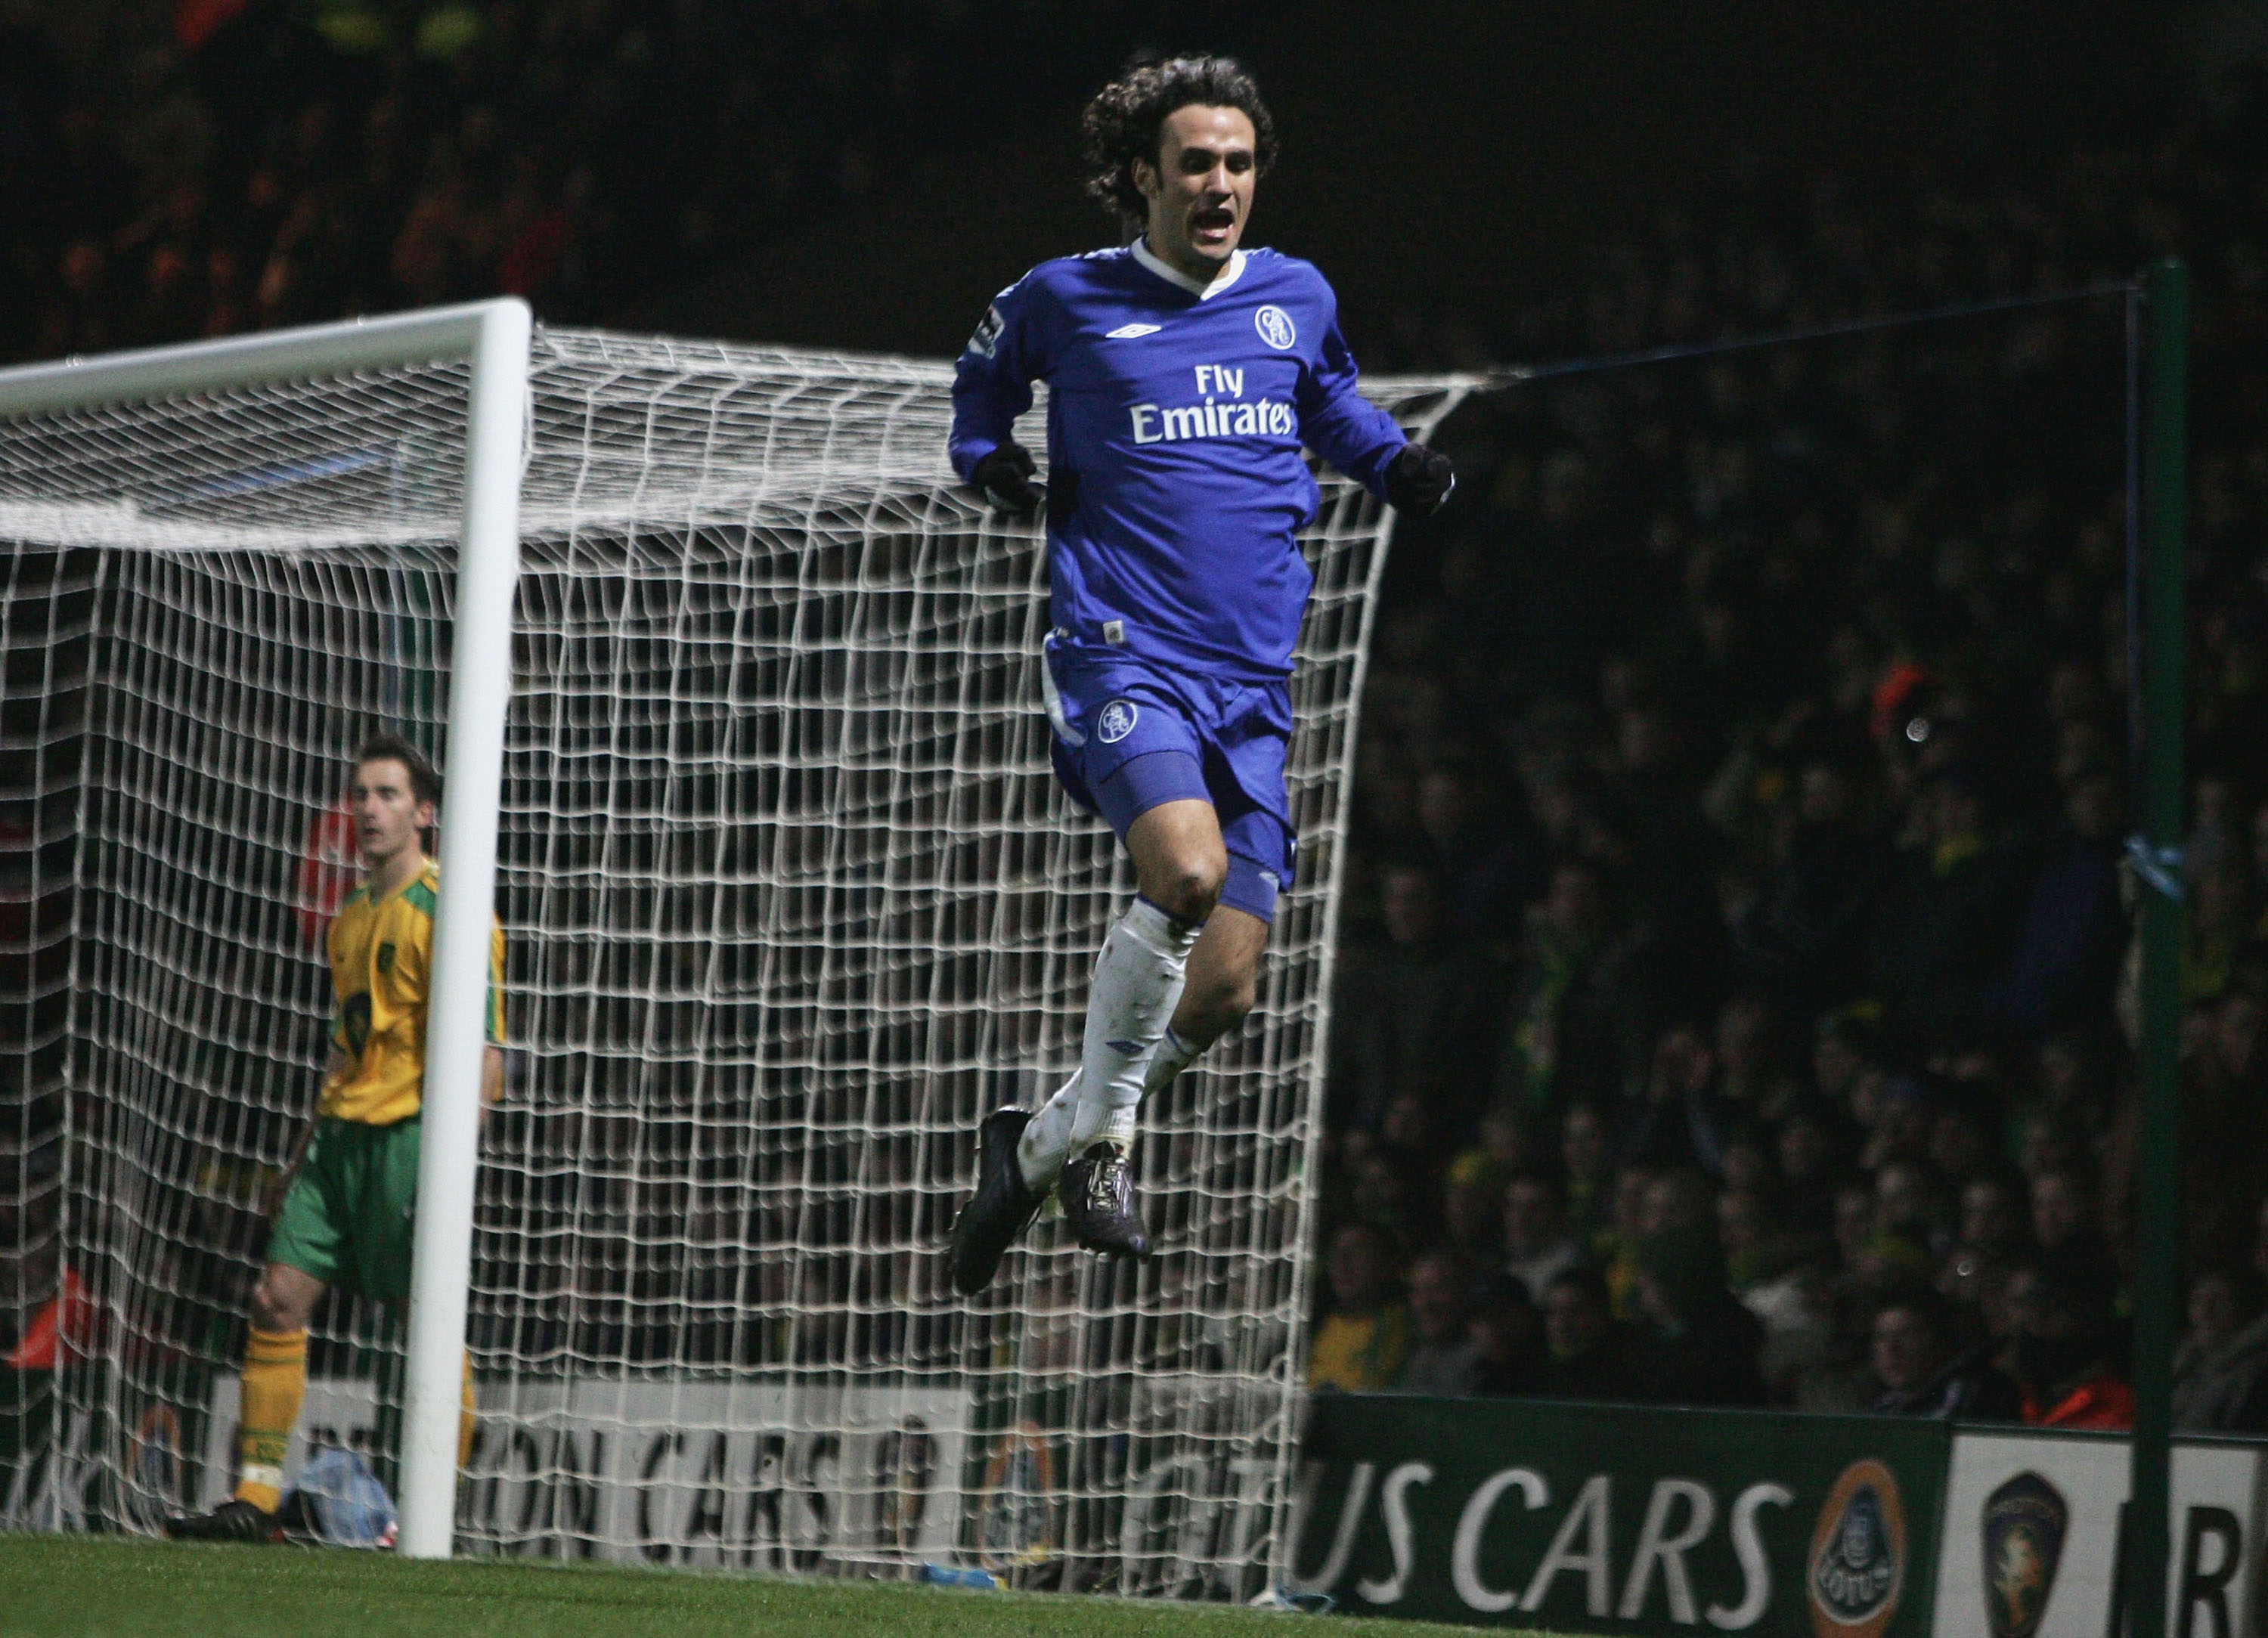 NORWICH, ENGLAND - MARCH 5: Ricardo Carvalho of Chelsea celebrates his goal during the Barclays Premiership match between Norwich City and Chelsea at Carrow Road on March 5, 2005 in Norwich, England. (Photo by Jamie McDonald/Getty Images)